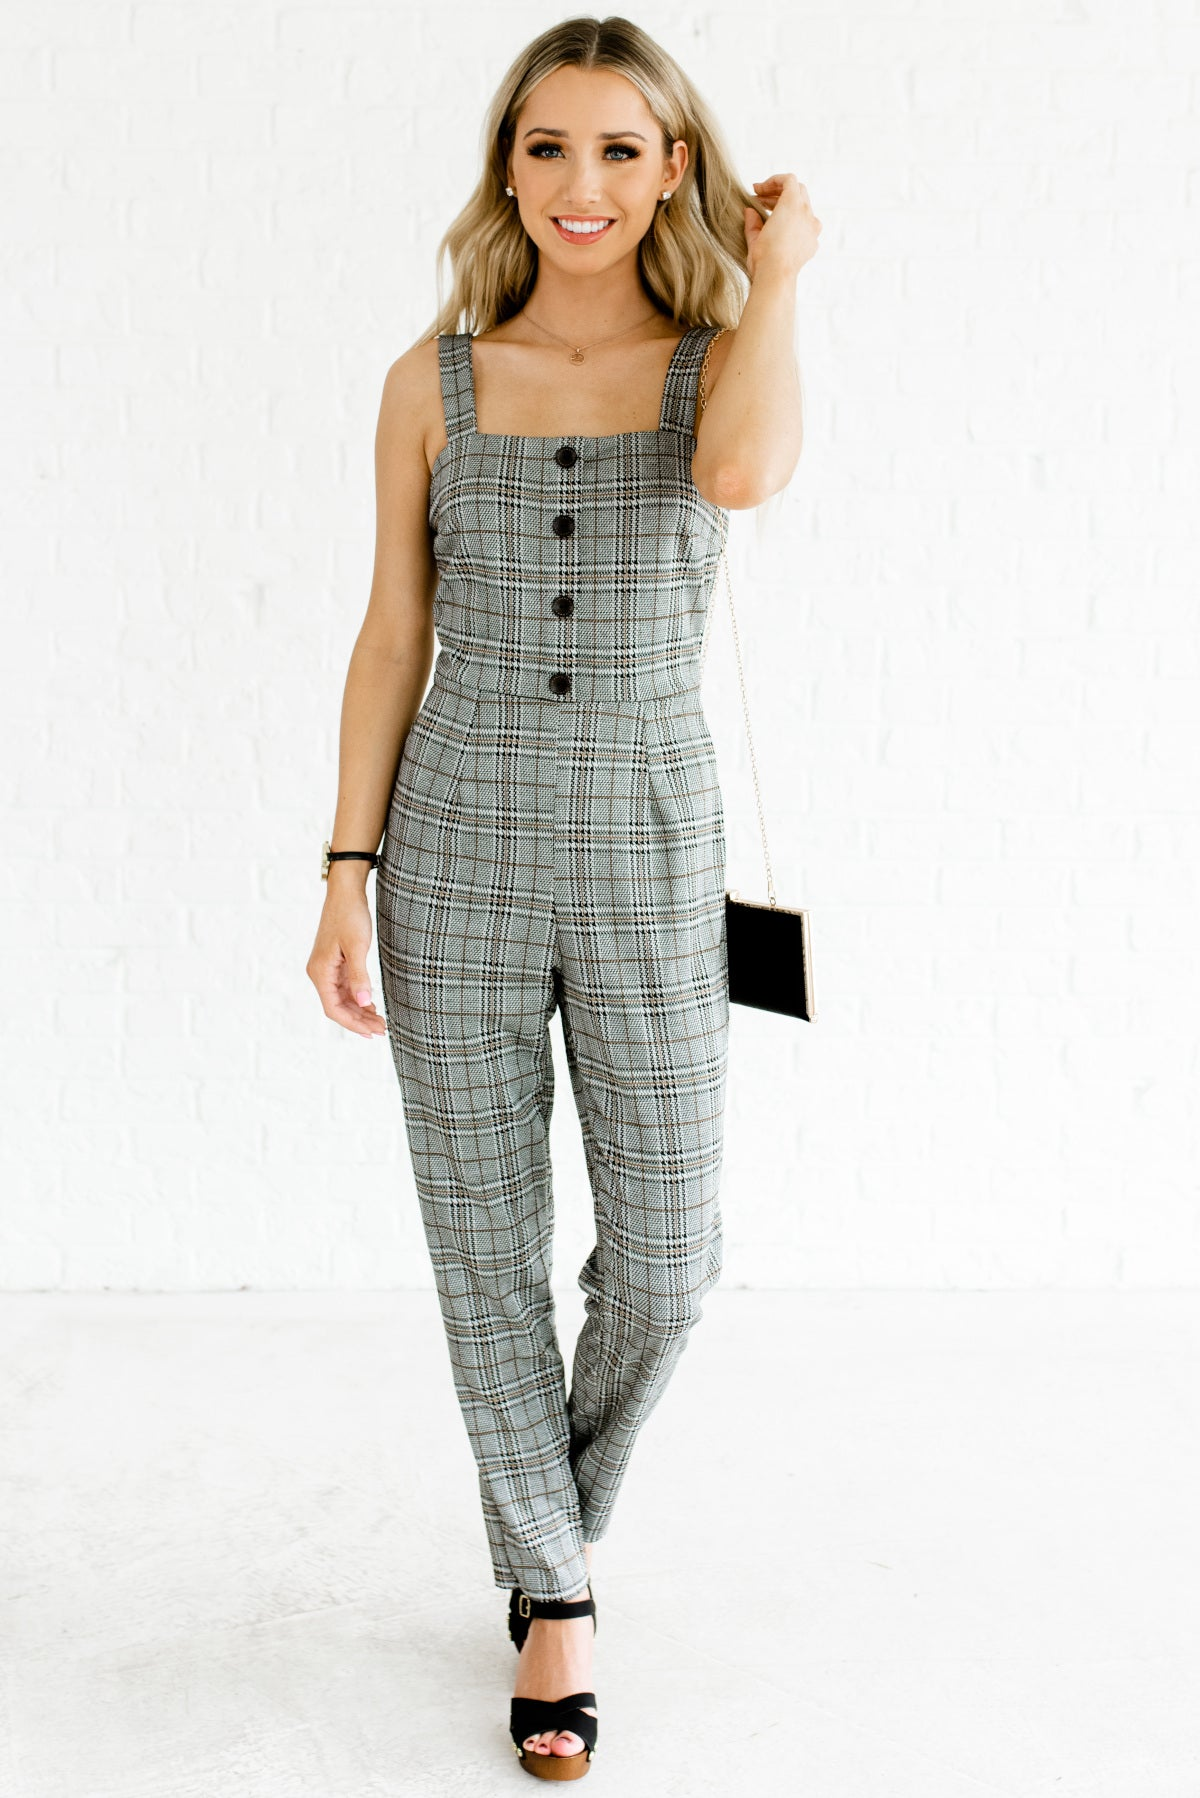 Gray Black and Mustard Houndstooth Plaid Boutique Jumpsuits for Women